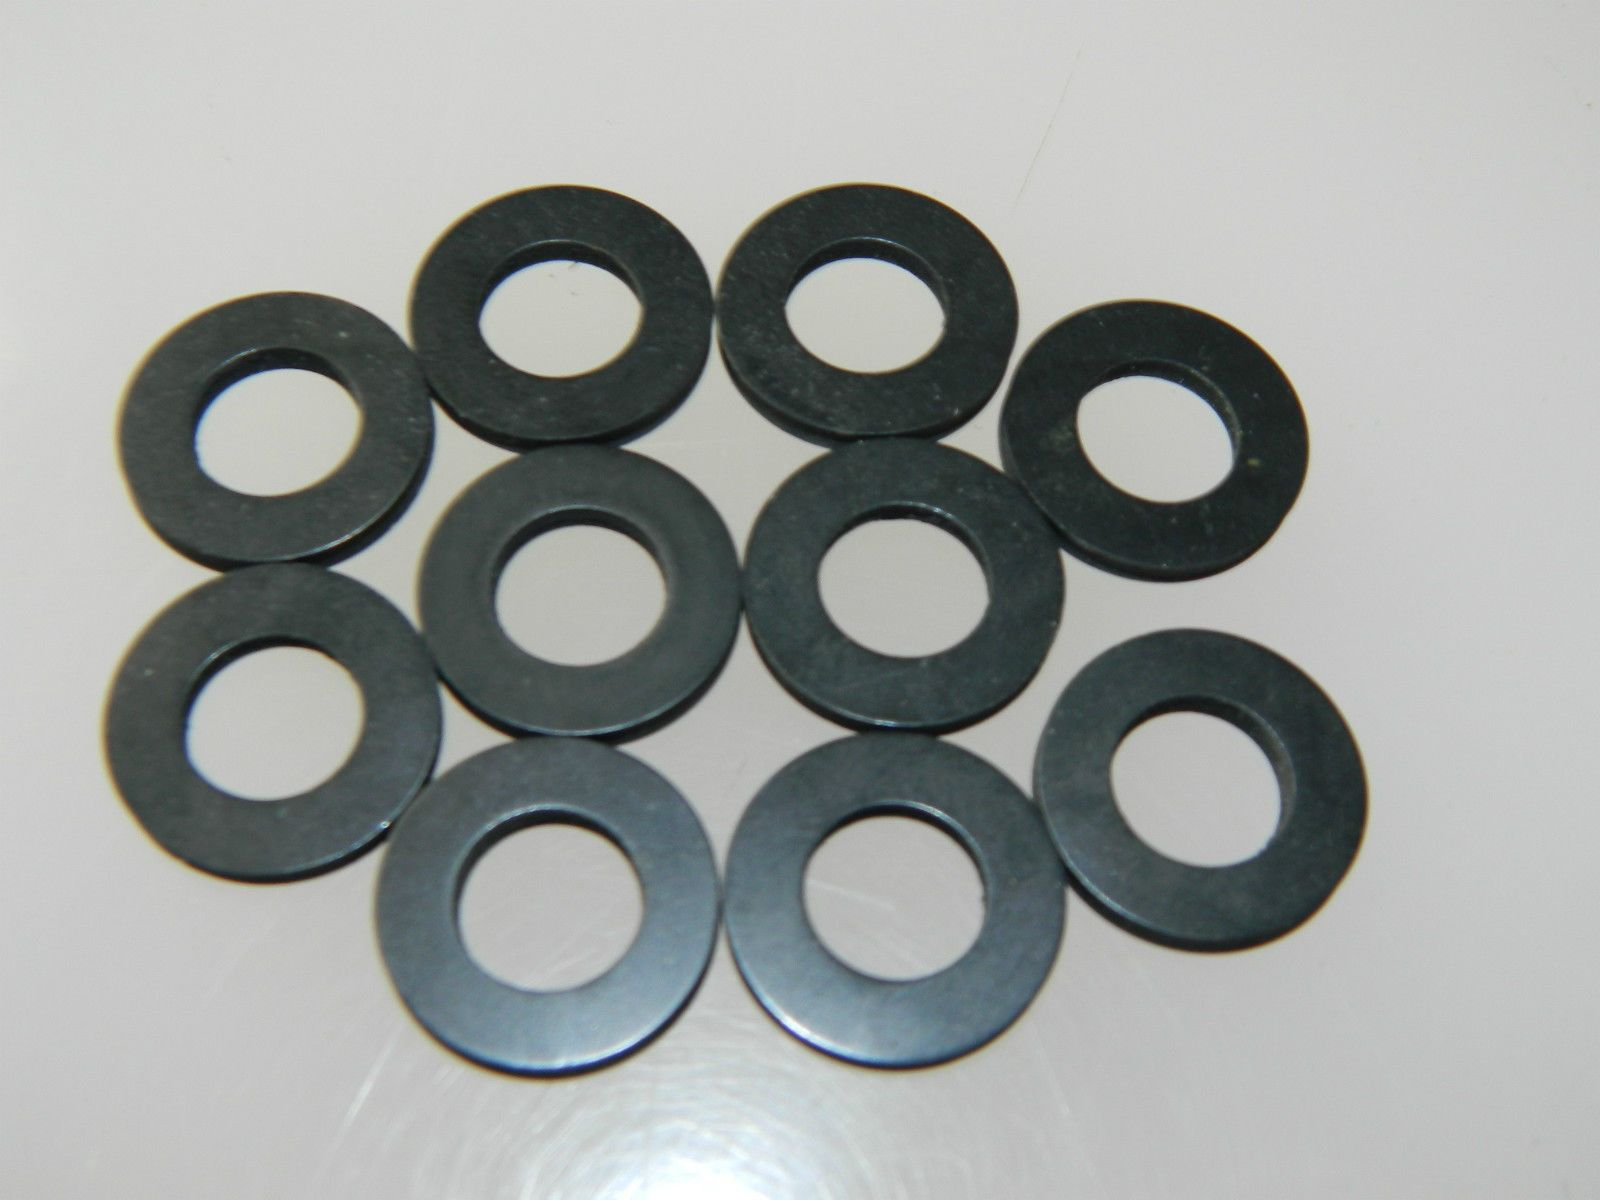 10 x Rubber Flat Washers Fit Bolt Size M10 Cushioning Washer